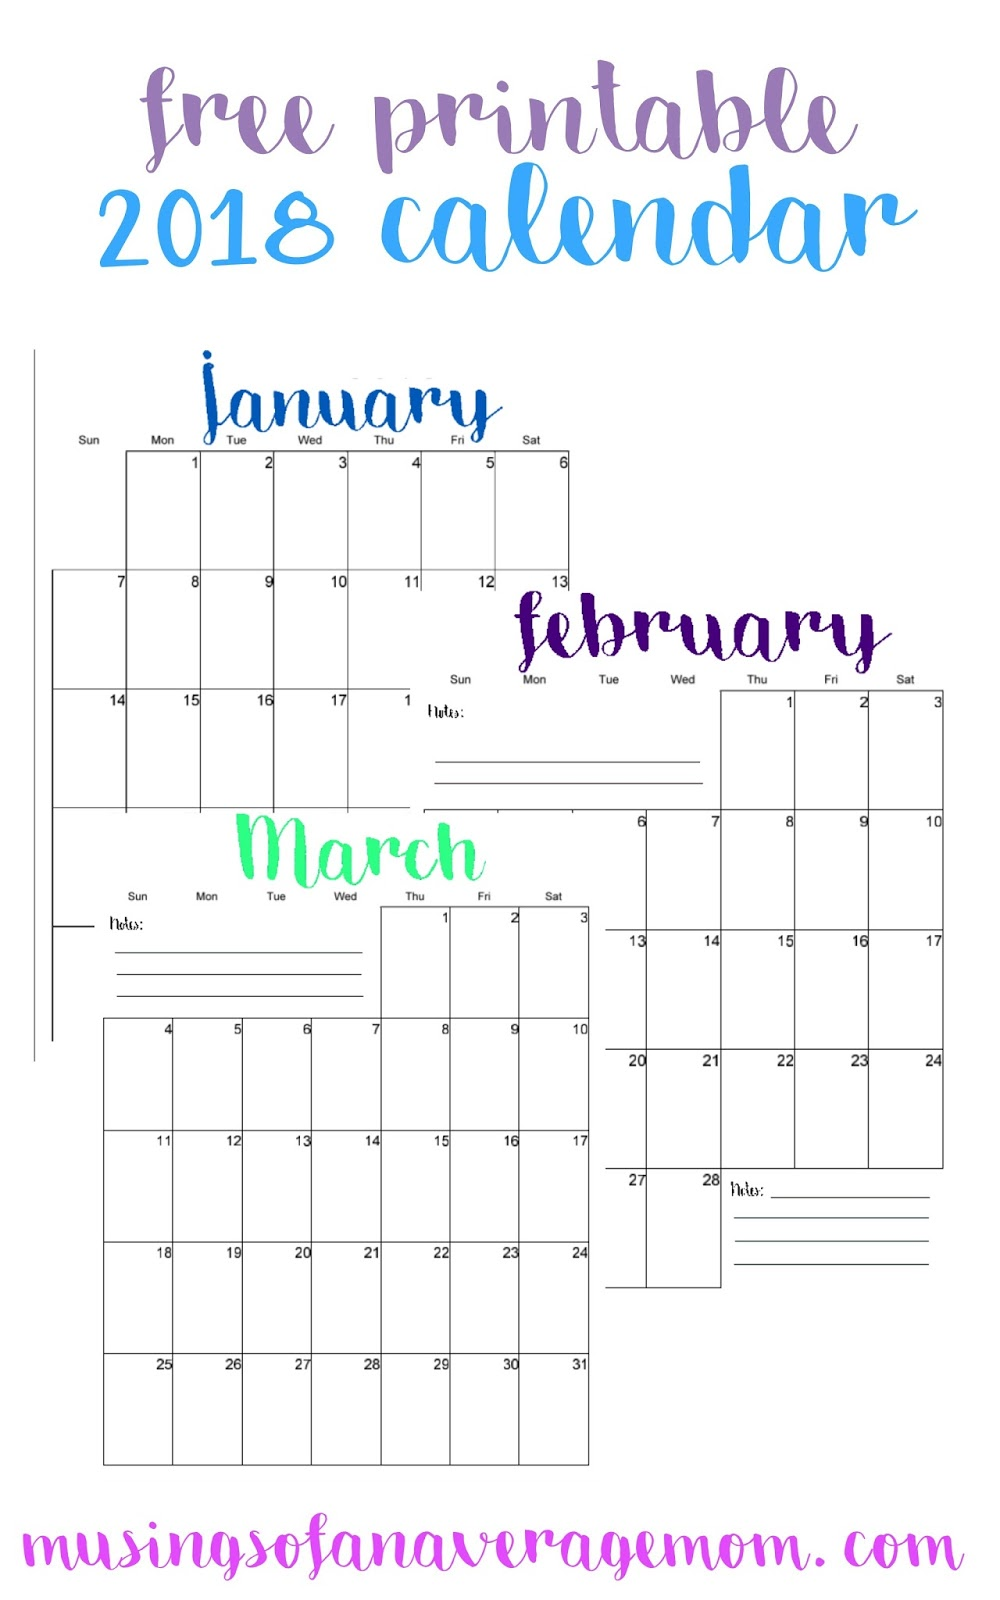 Musings of an Average Mom: 2018 coloured vertical calendar